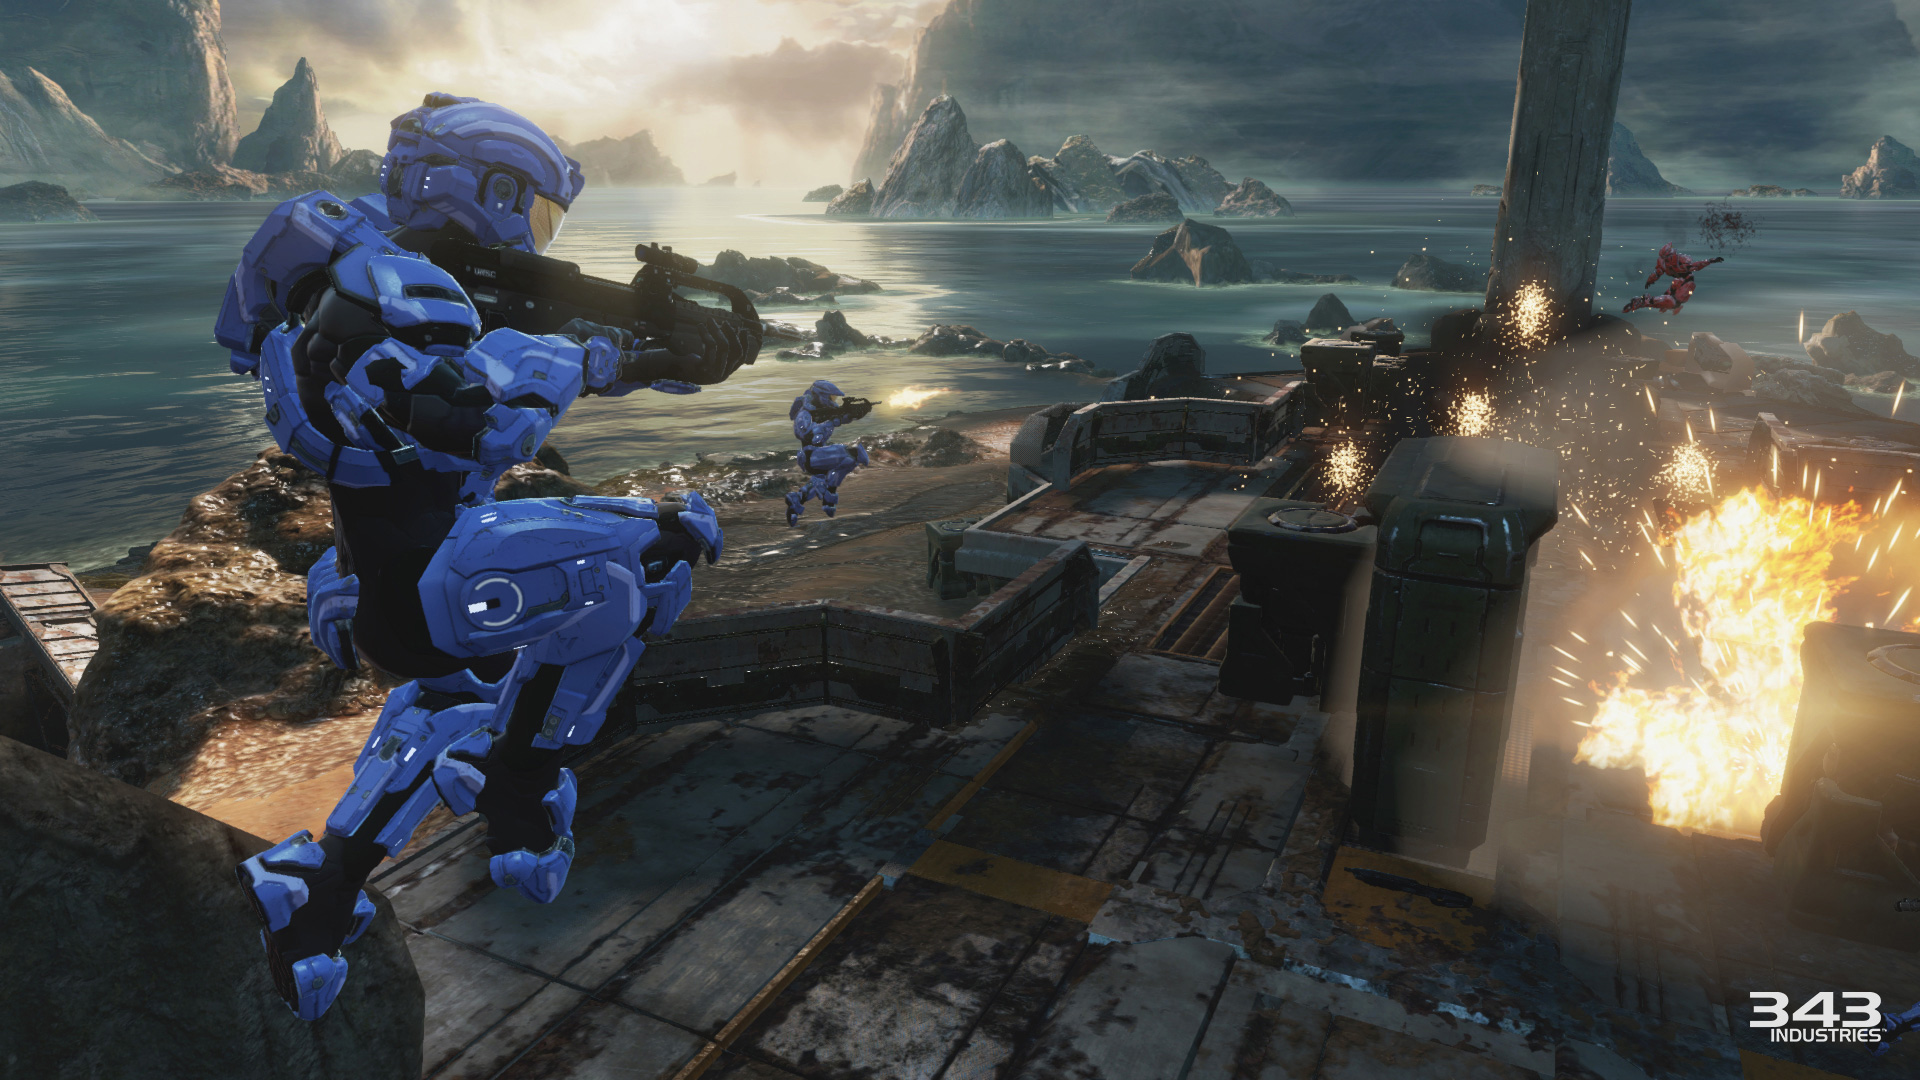 Halo: The Master Chief Collection artwork